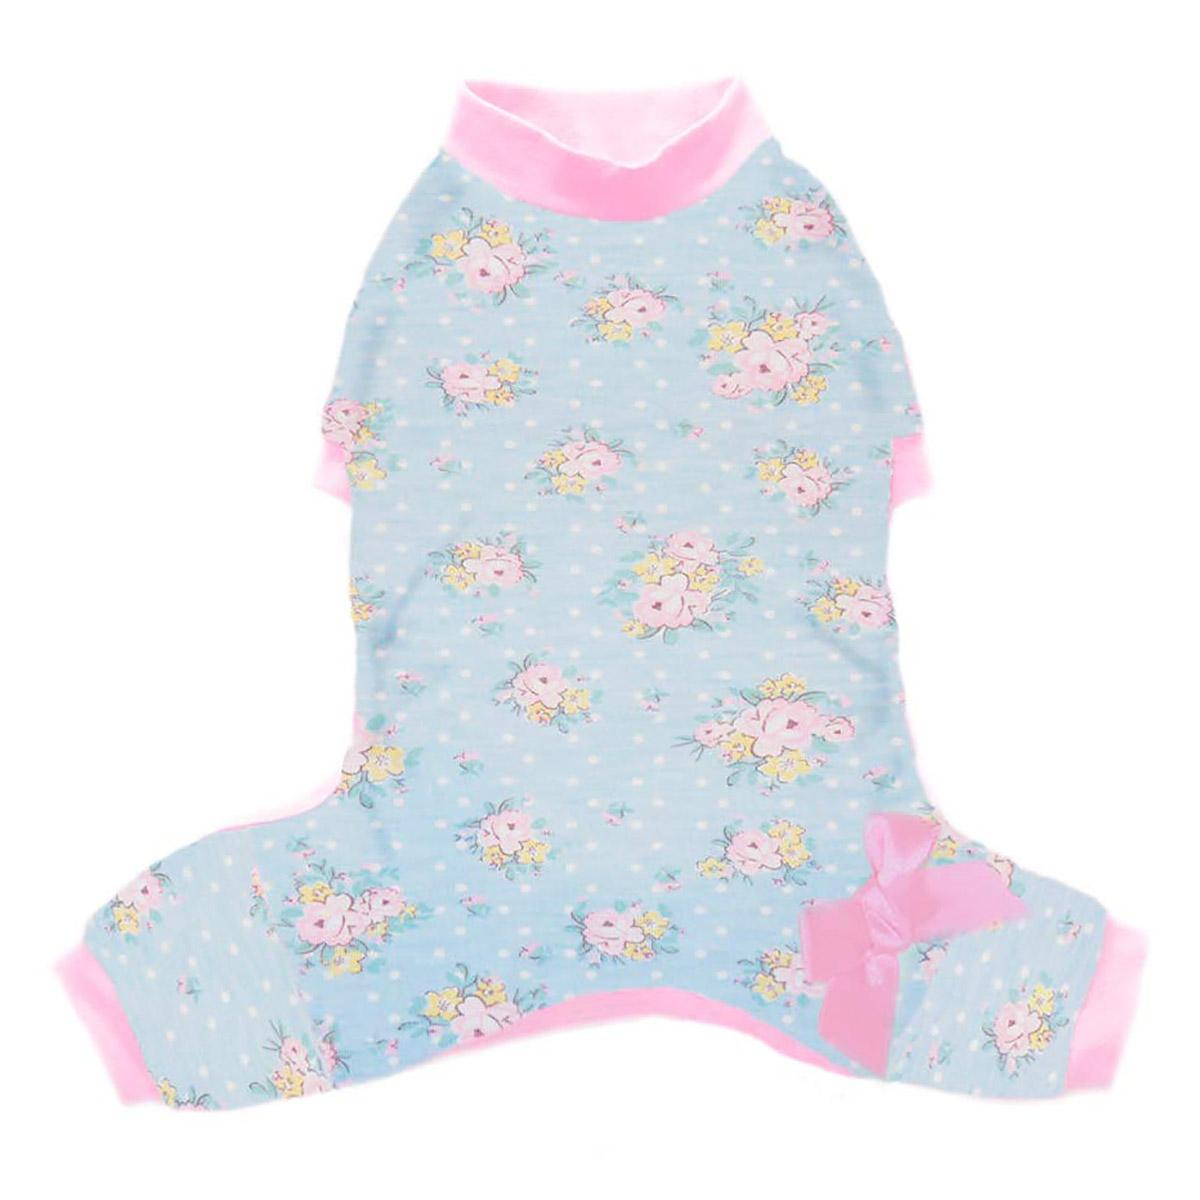 Emma Dog Pajamas - Blue Floral with Pink Trim